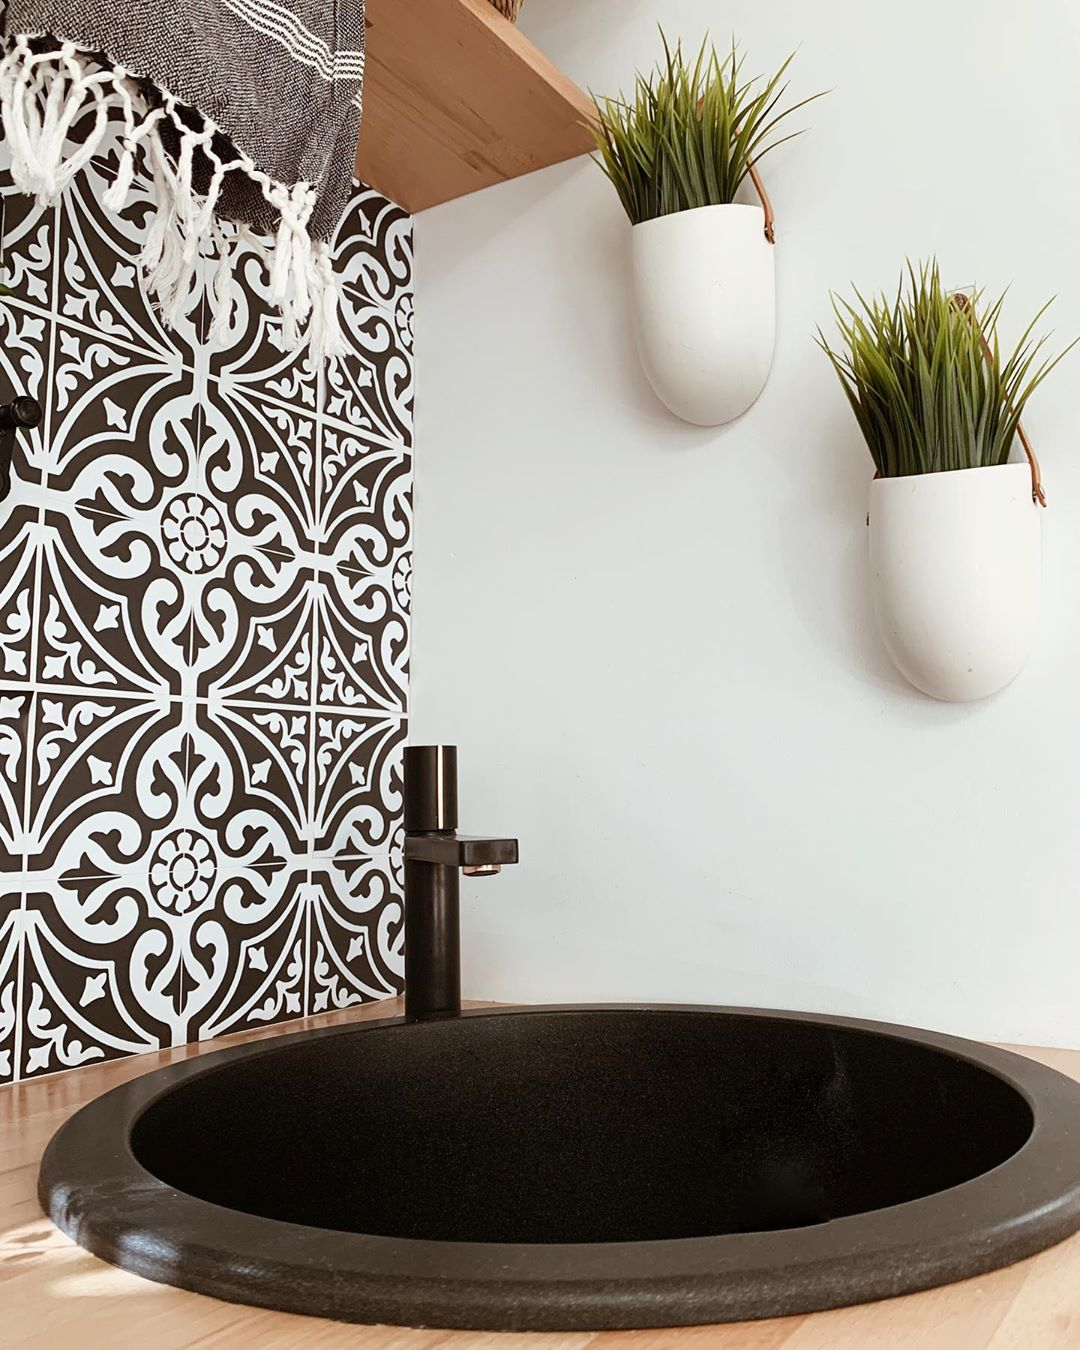 Black and white splashback behind a black RV sink and tap